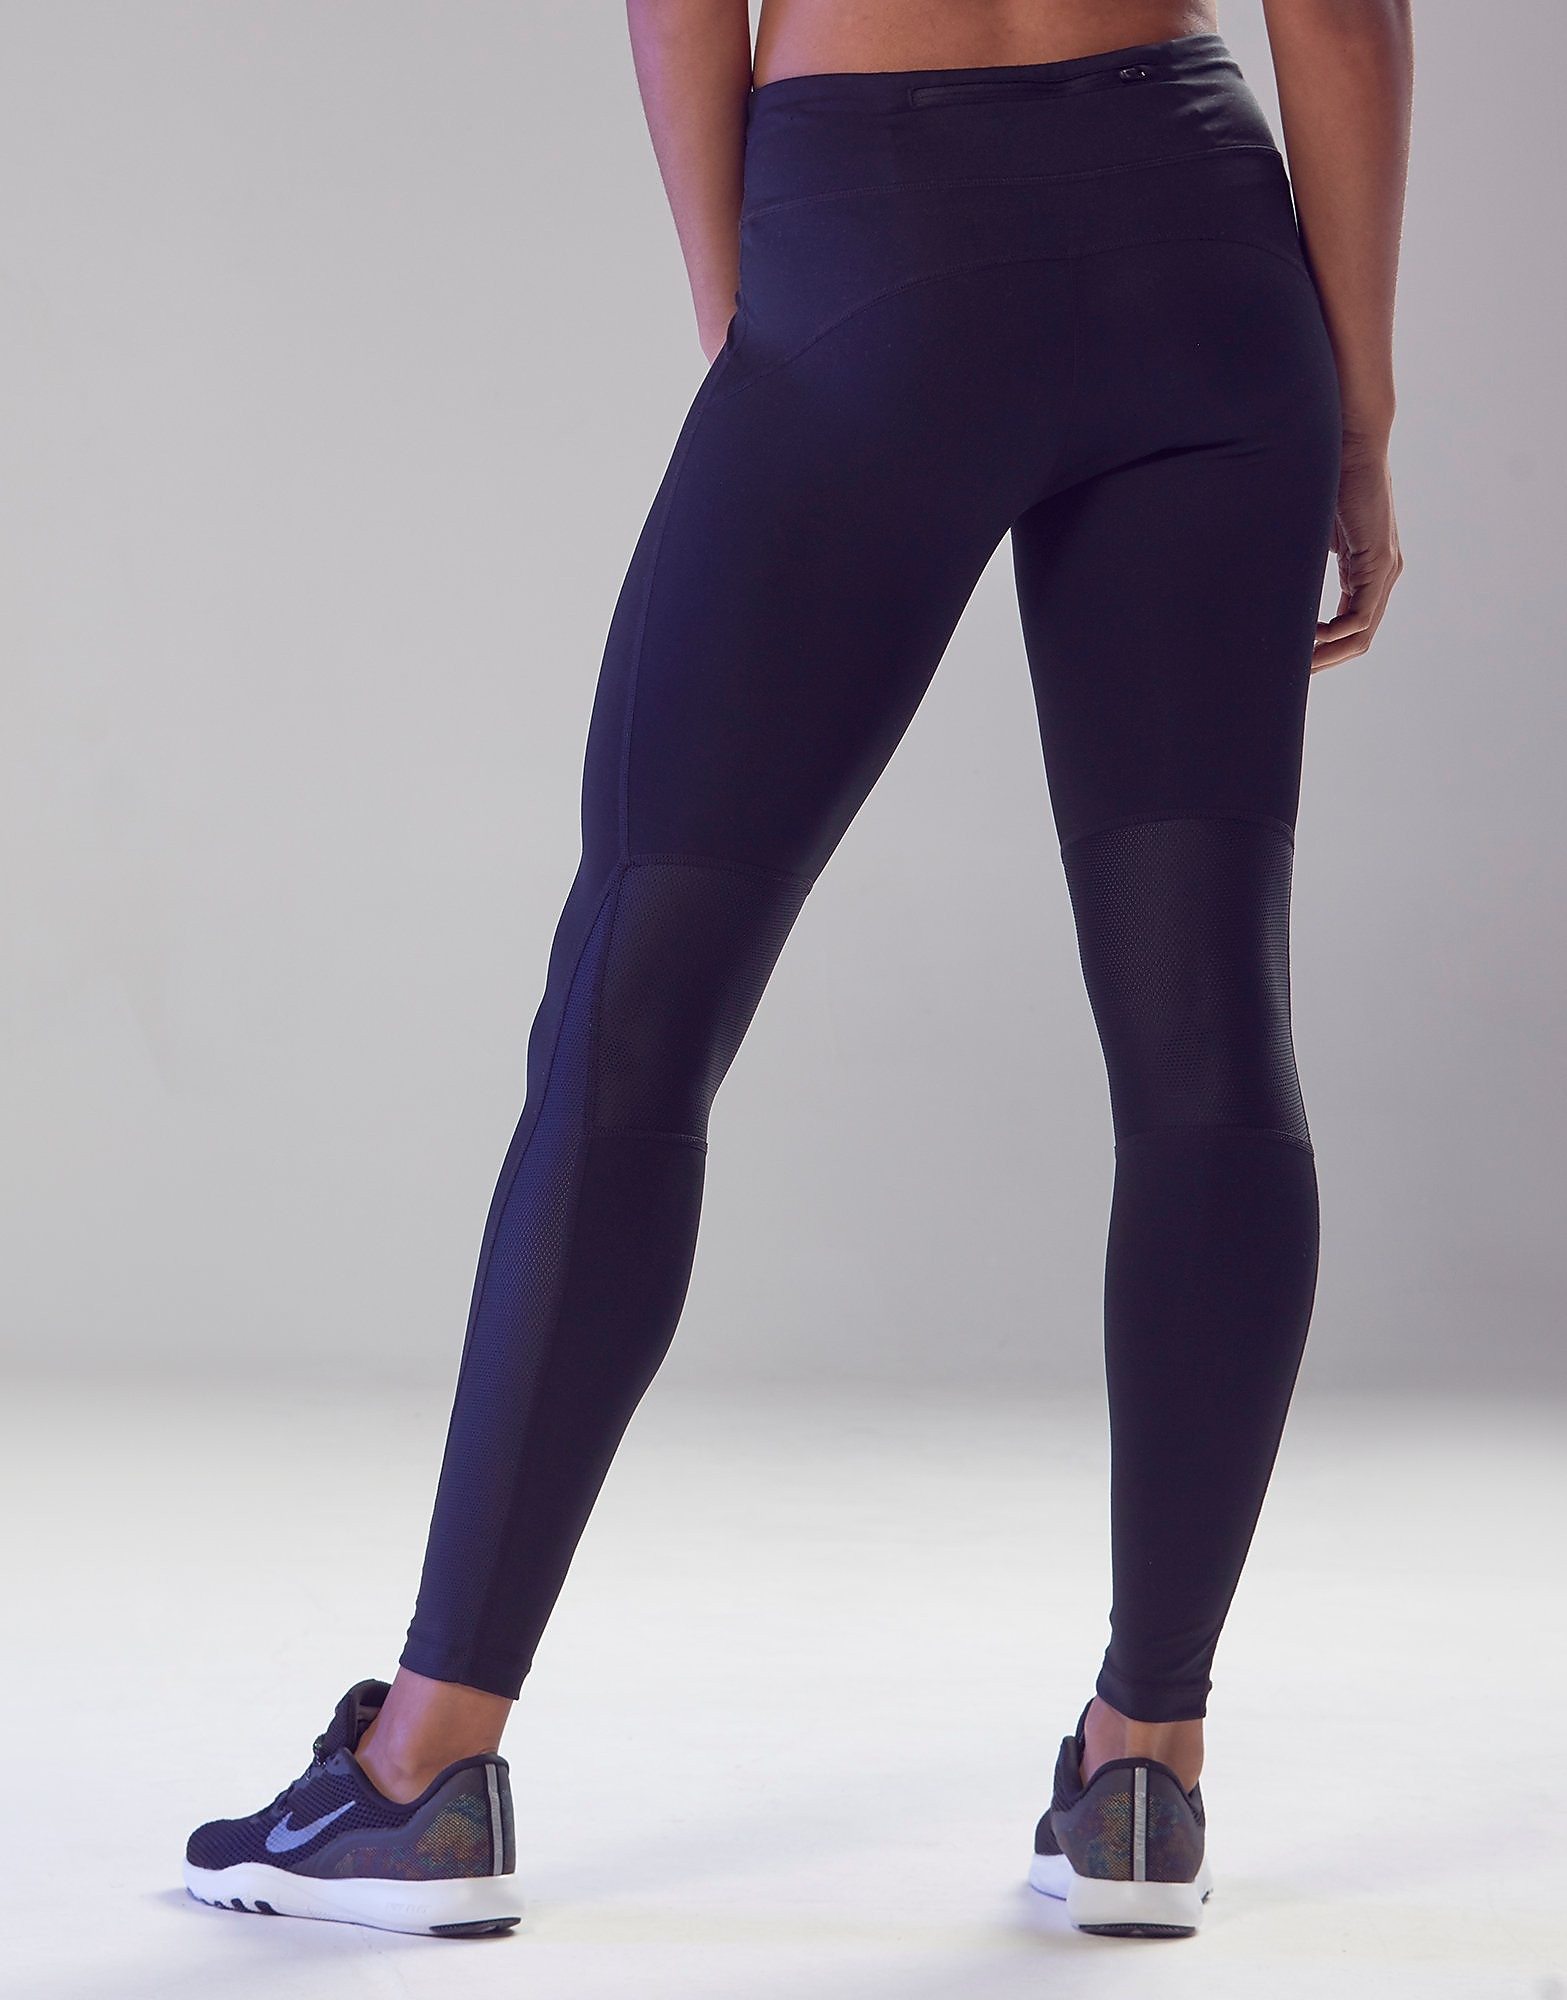 Nike Racer Tights